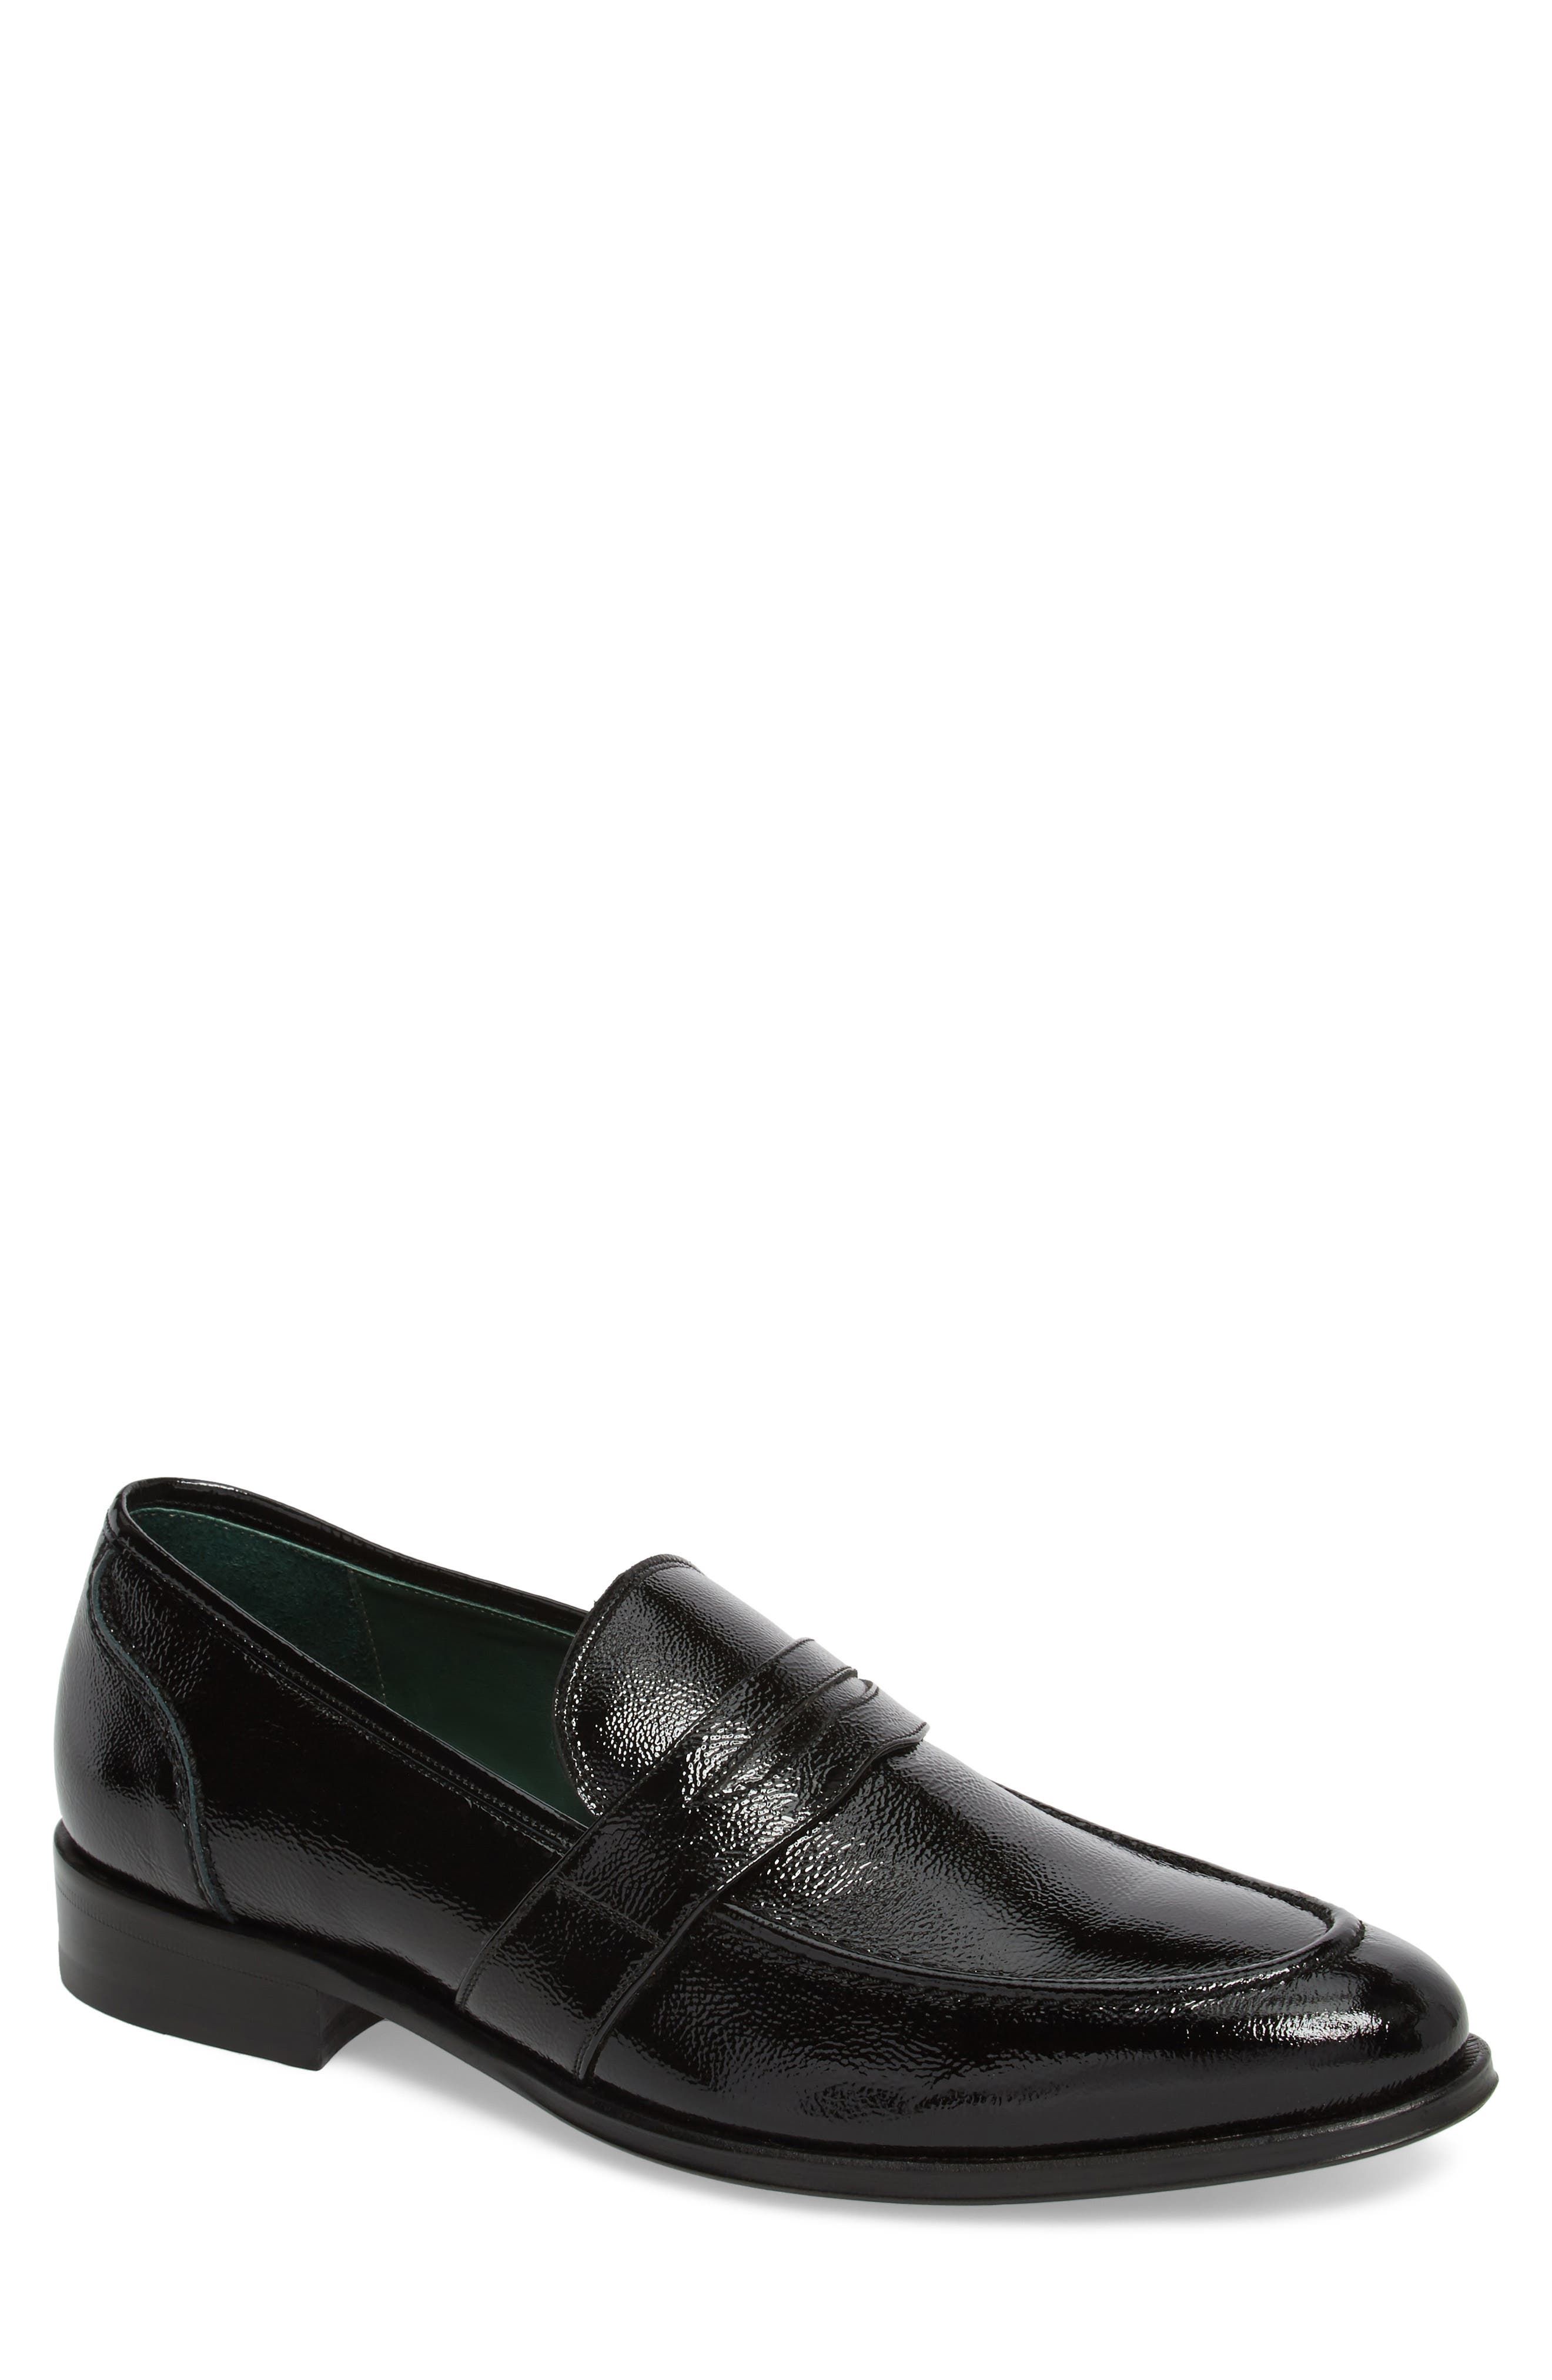 Argos Penny Loafer,                         Main,                         color,